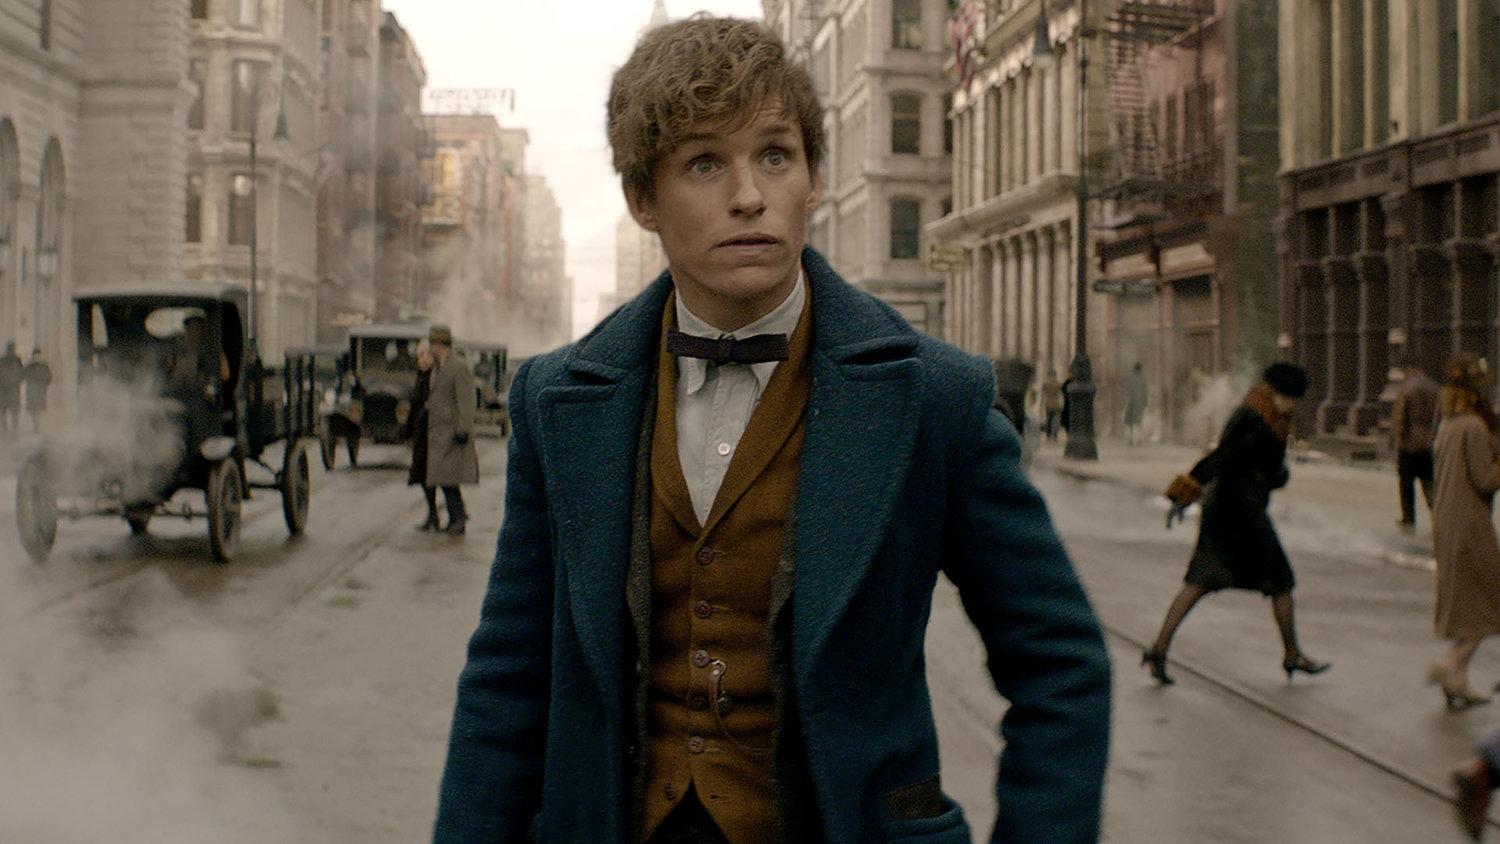 Honest Trailer: FANTASTIC BEASTS AND WHERE TO FIND THEM